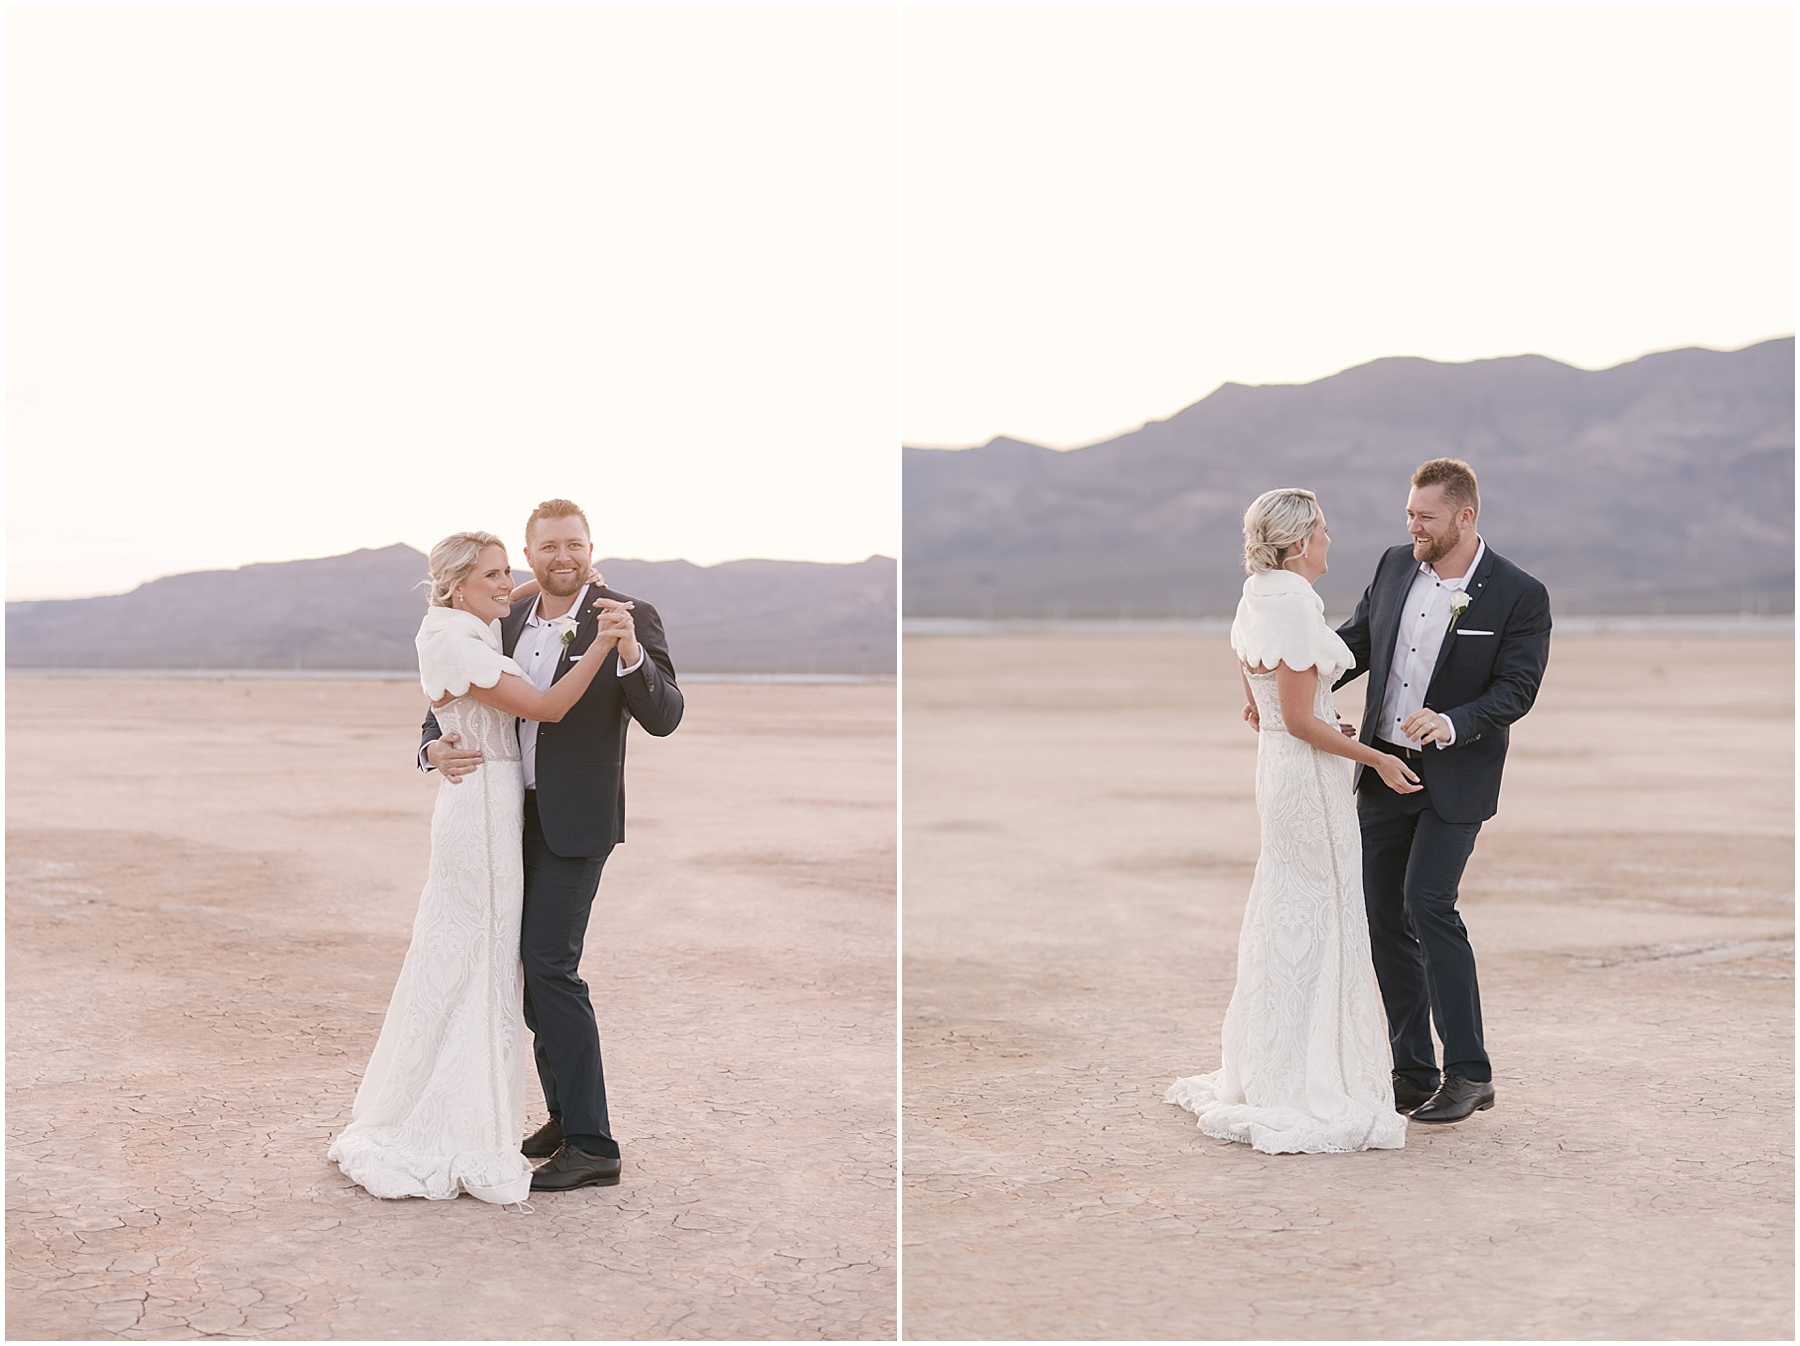 dry_lake_bed_nelson__las_vegas_elopement_photography_blog-19.jpg